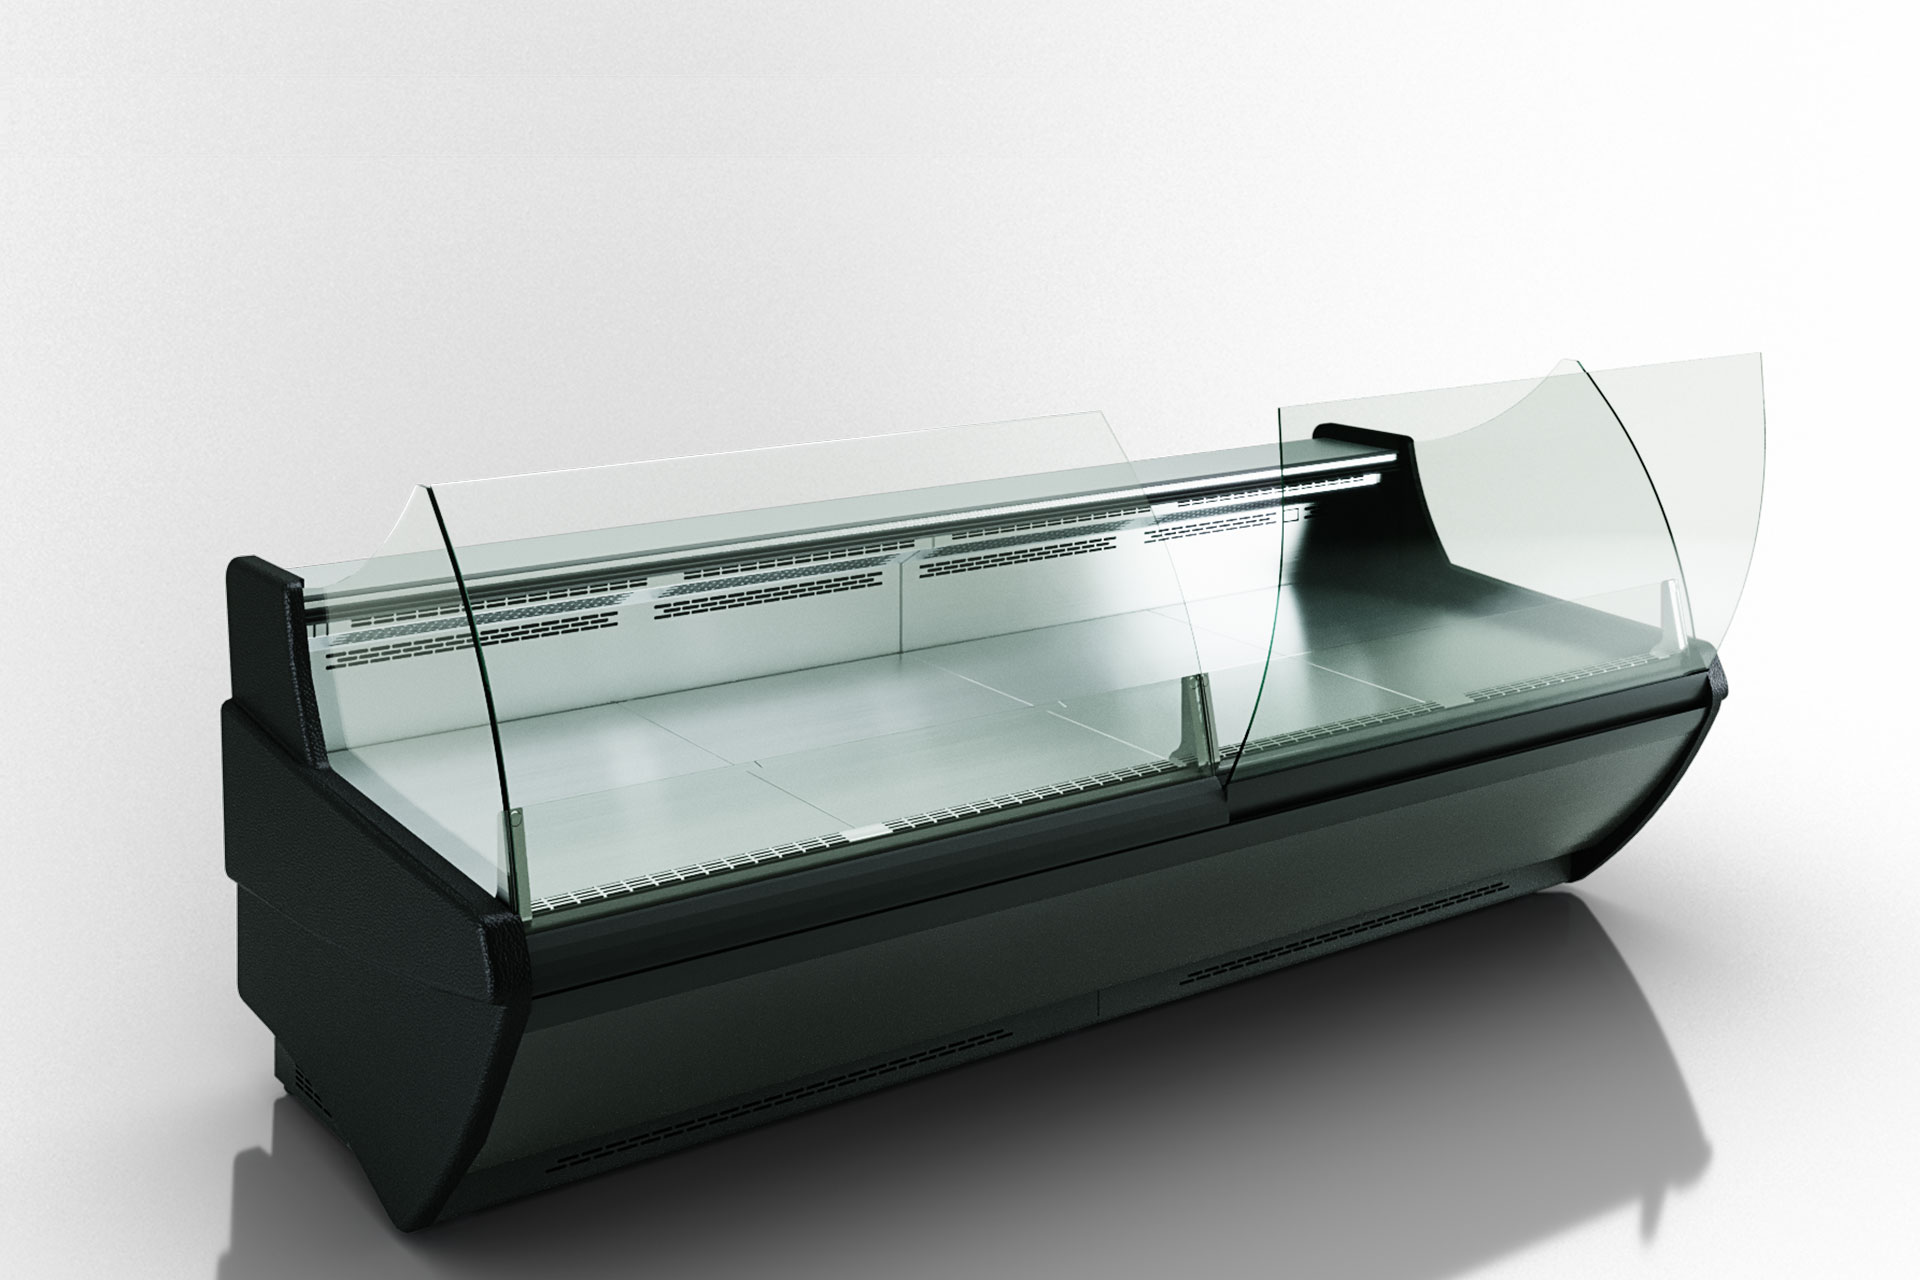 Counter Symphony MG 100 deli T2 110-DLM